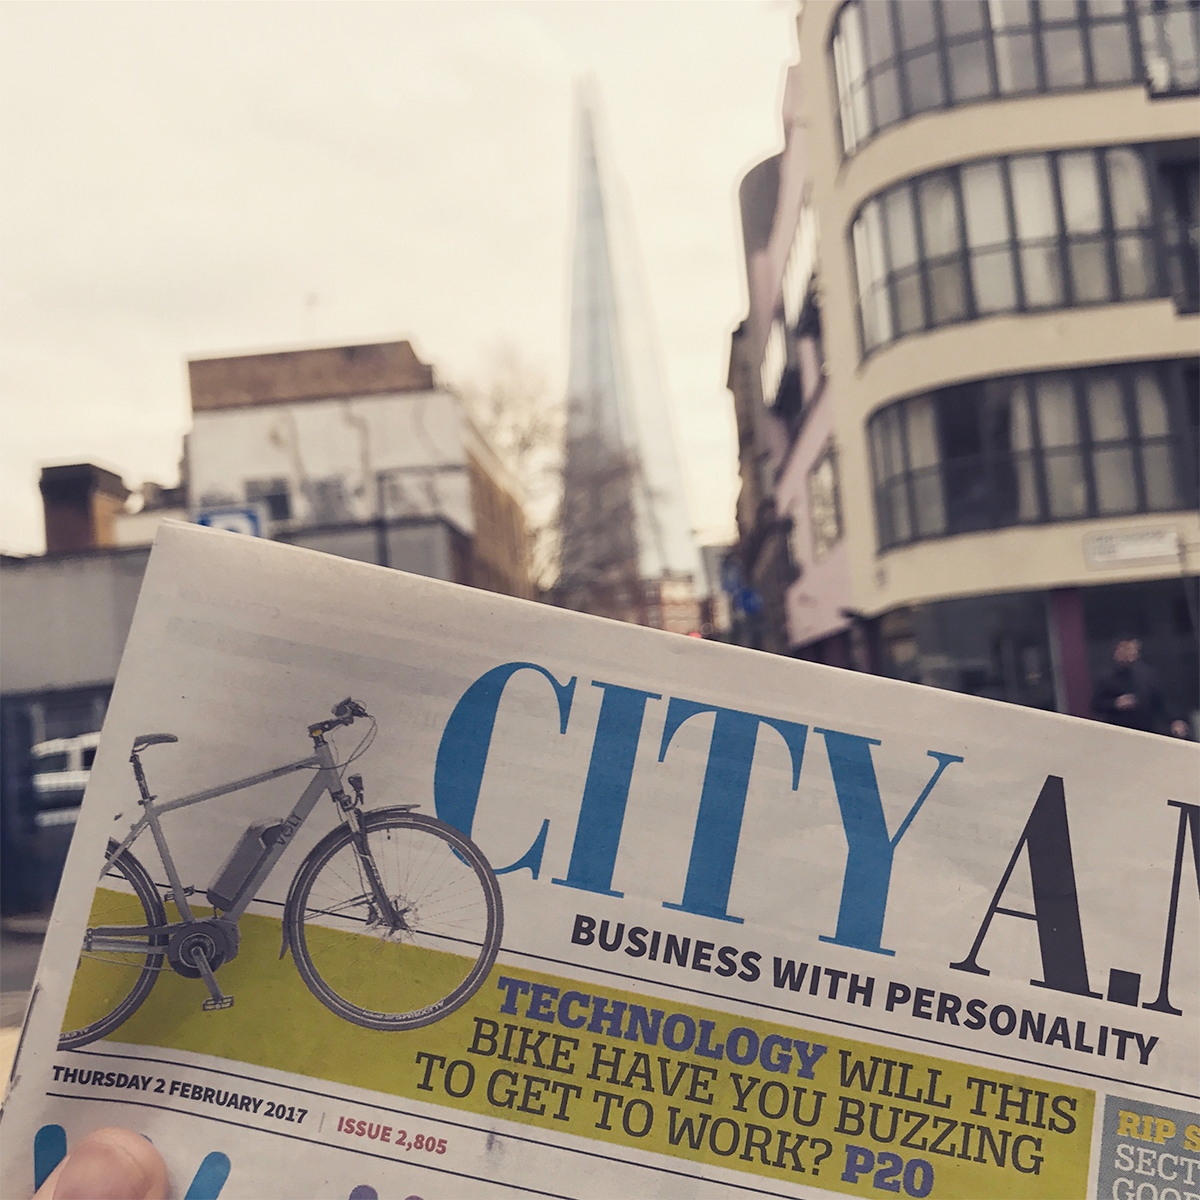 City AM cover featuring Infinity review